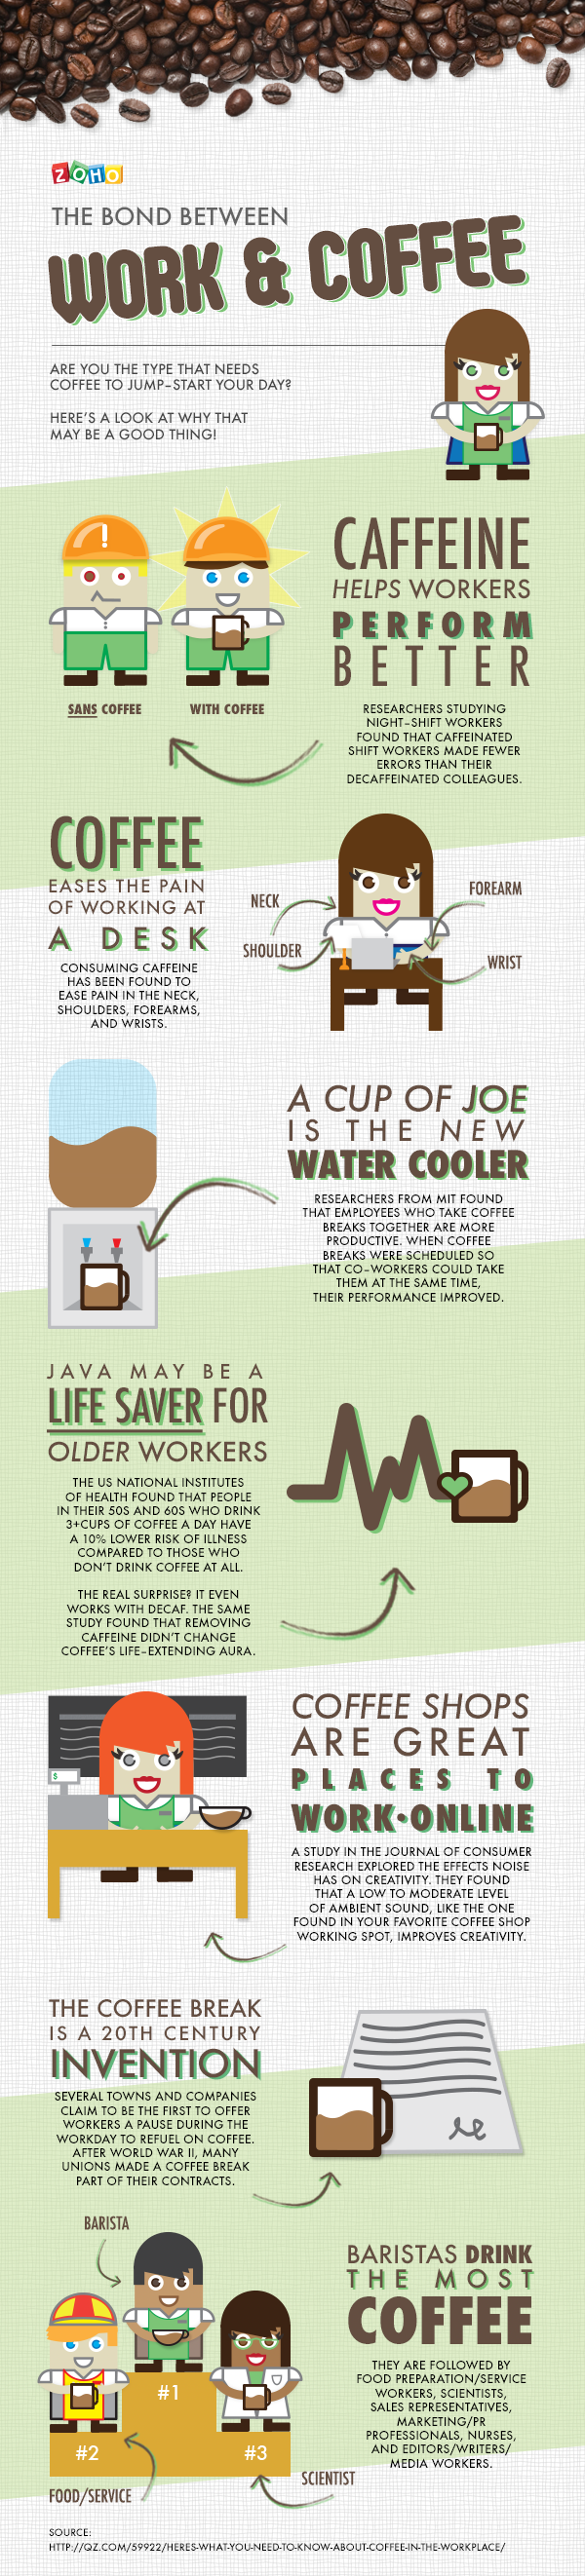 Coffee and Work Infographic